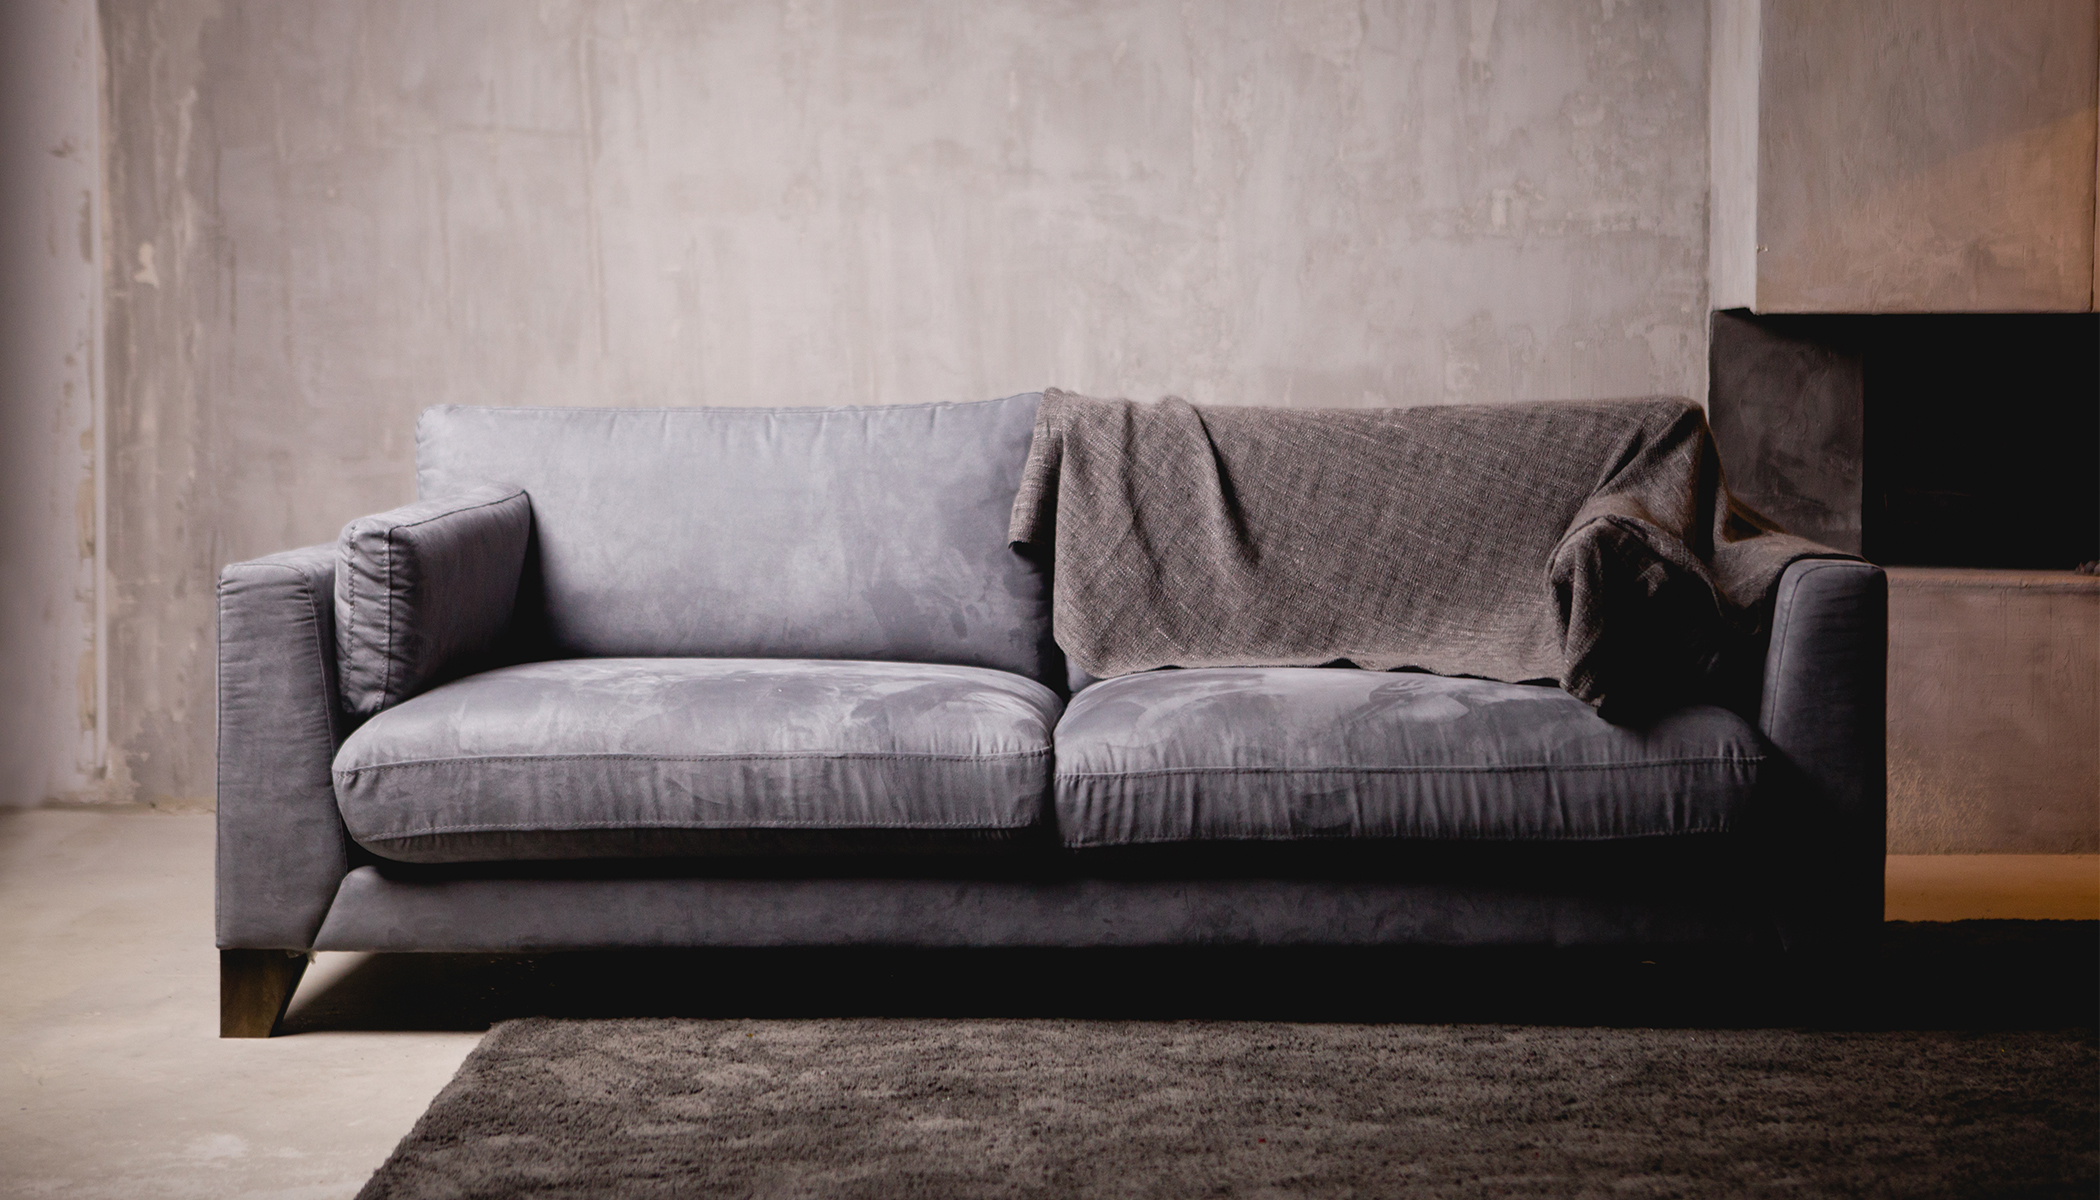 3 Roommates Buy Old Couch for $20, Start Screaming Upon Discovering What's Hidden Inside